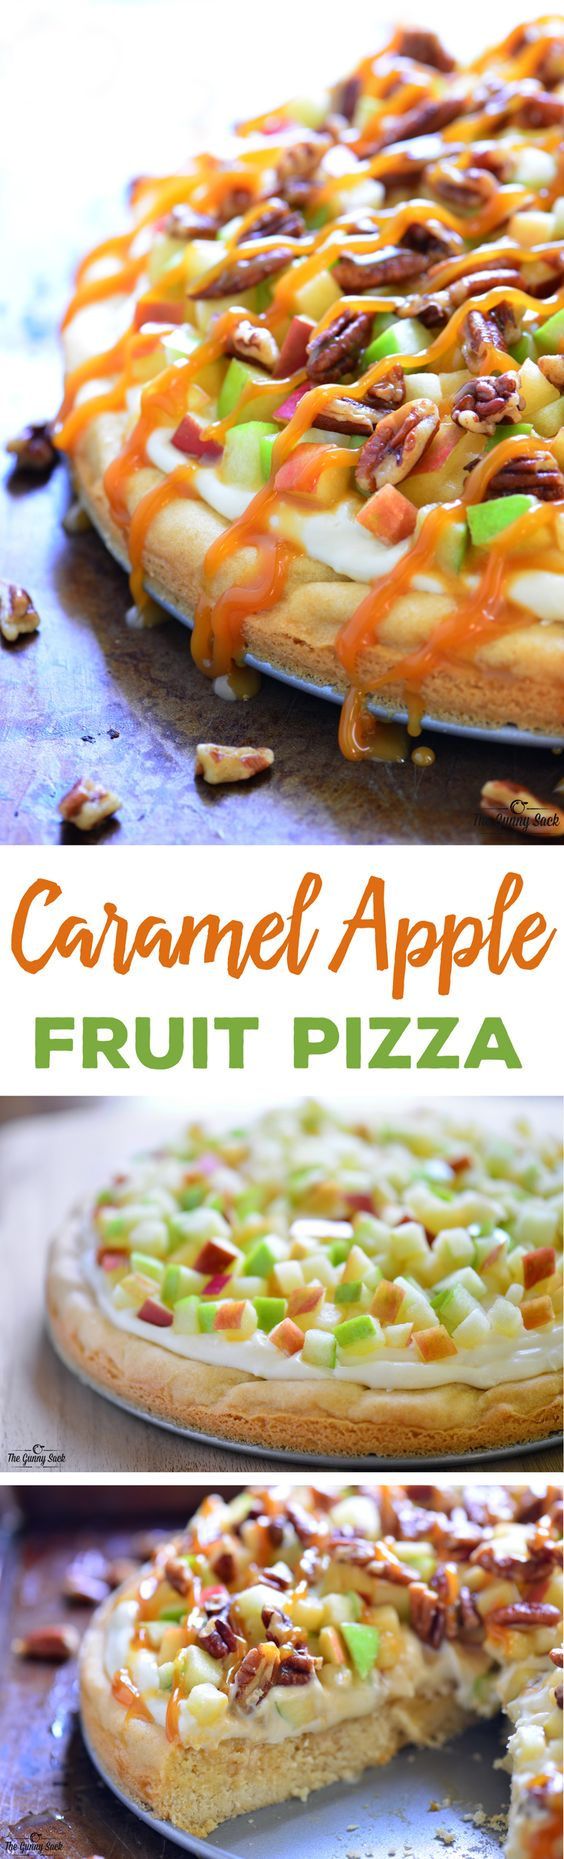 This Caramel Apple Fruit Pizza is a delicious fall dessert with a sugar cookie crust, cream cheese frosting, toasted pecans and a drizzle of delicious caramel as the perfect topper! Caramel Apple Dessert Fruit Pizza Recipe | The Gunny Sack #falldesserts #winterdesserts #christmasdesserts #thanksgivingdesserts #partydesserts #holidaydesserts #cinnamondesserts #carameldesserts #appledesserts